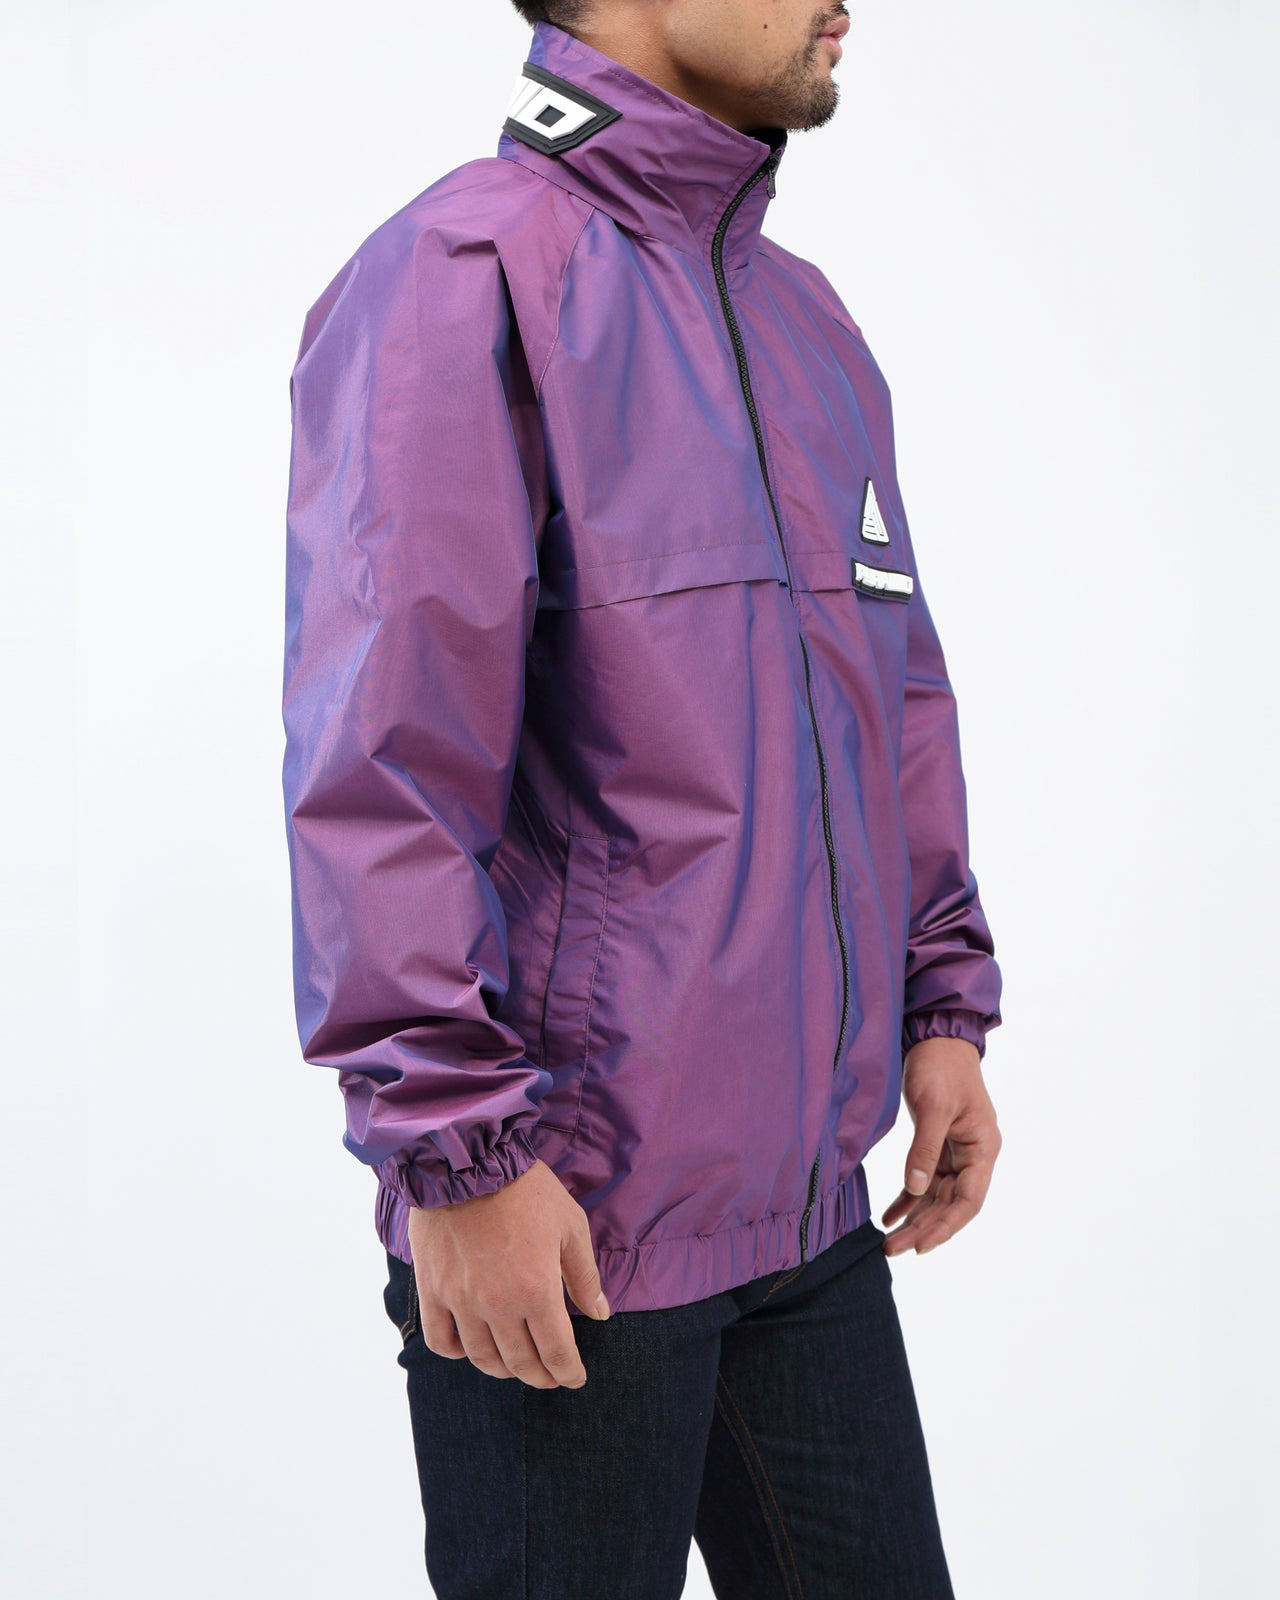 BP Iridescent Windbreaker JKT - Color: Purple